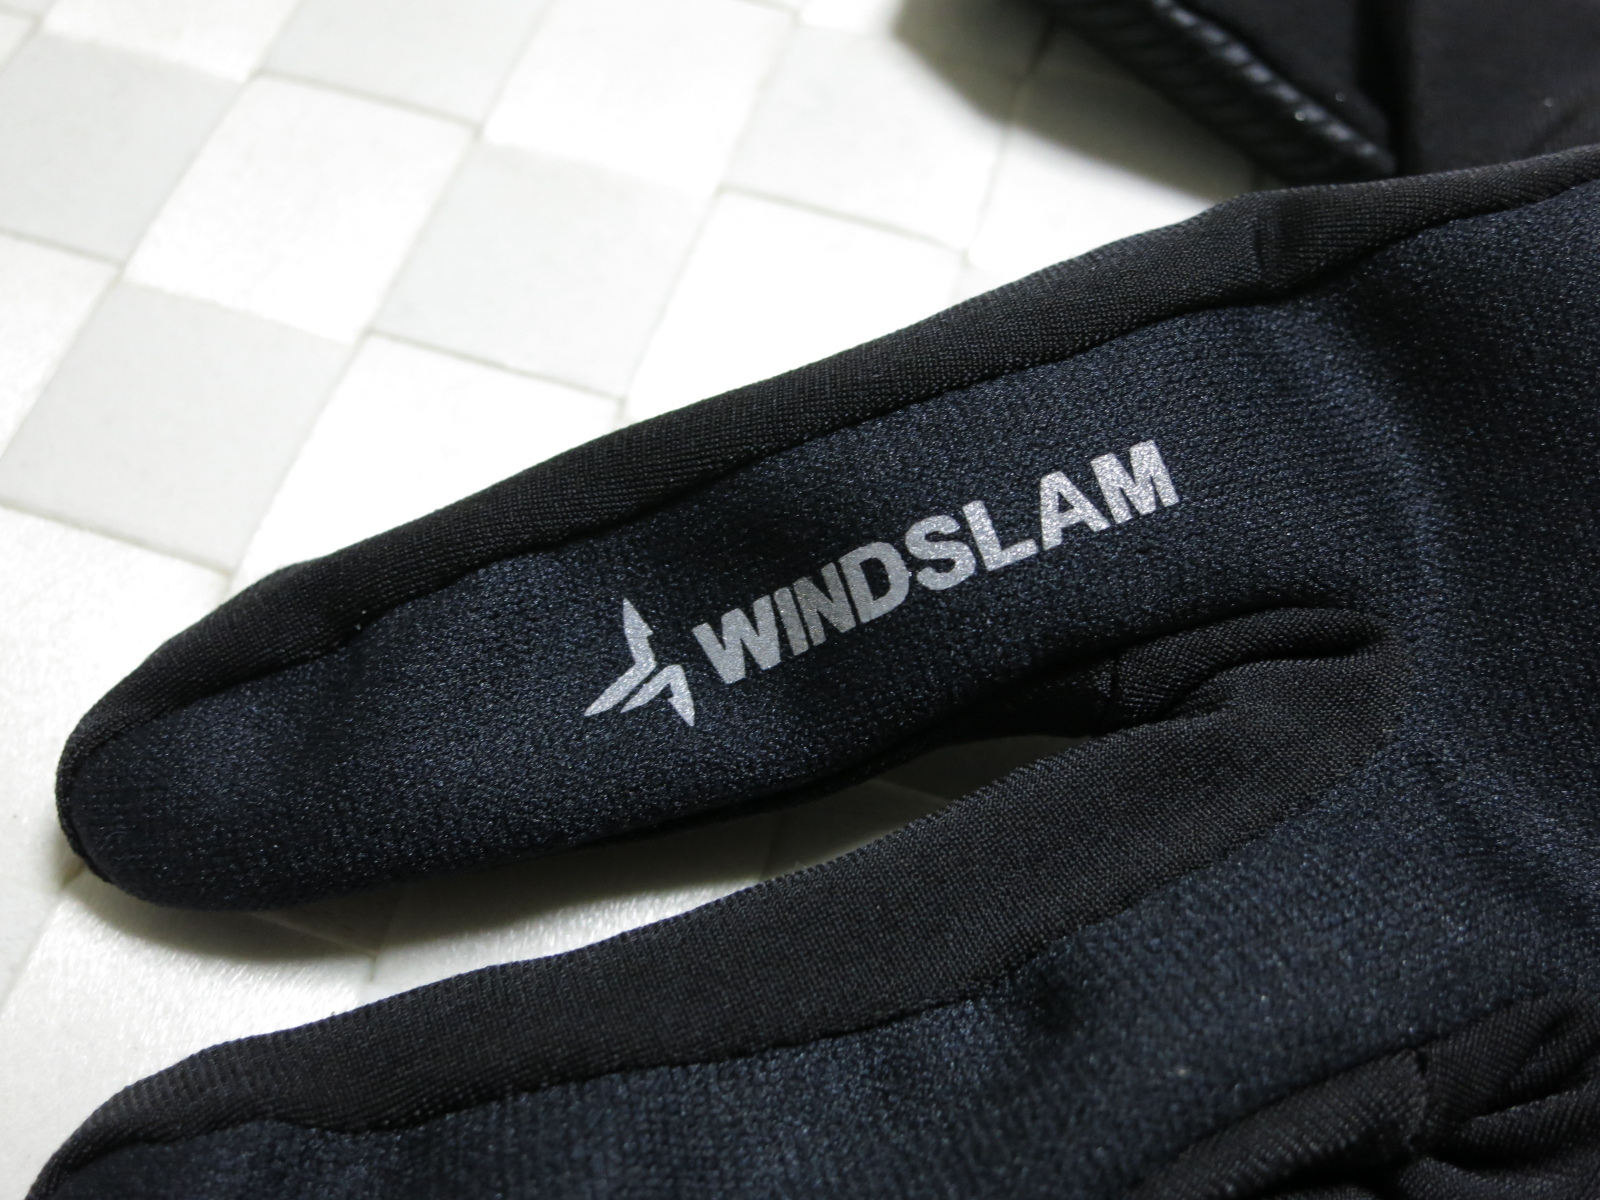 dhb_Windslam_Stretch_Glove_06.jpg